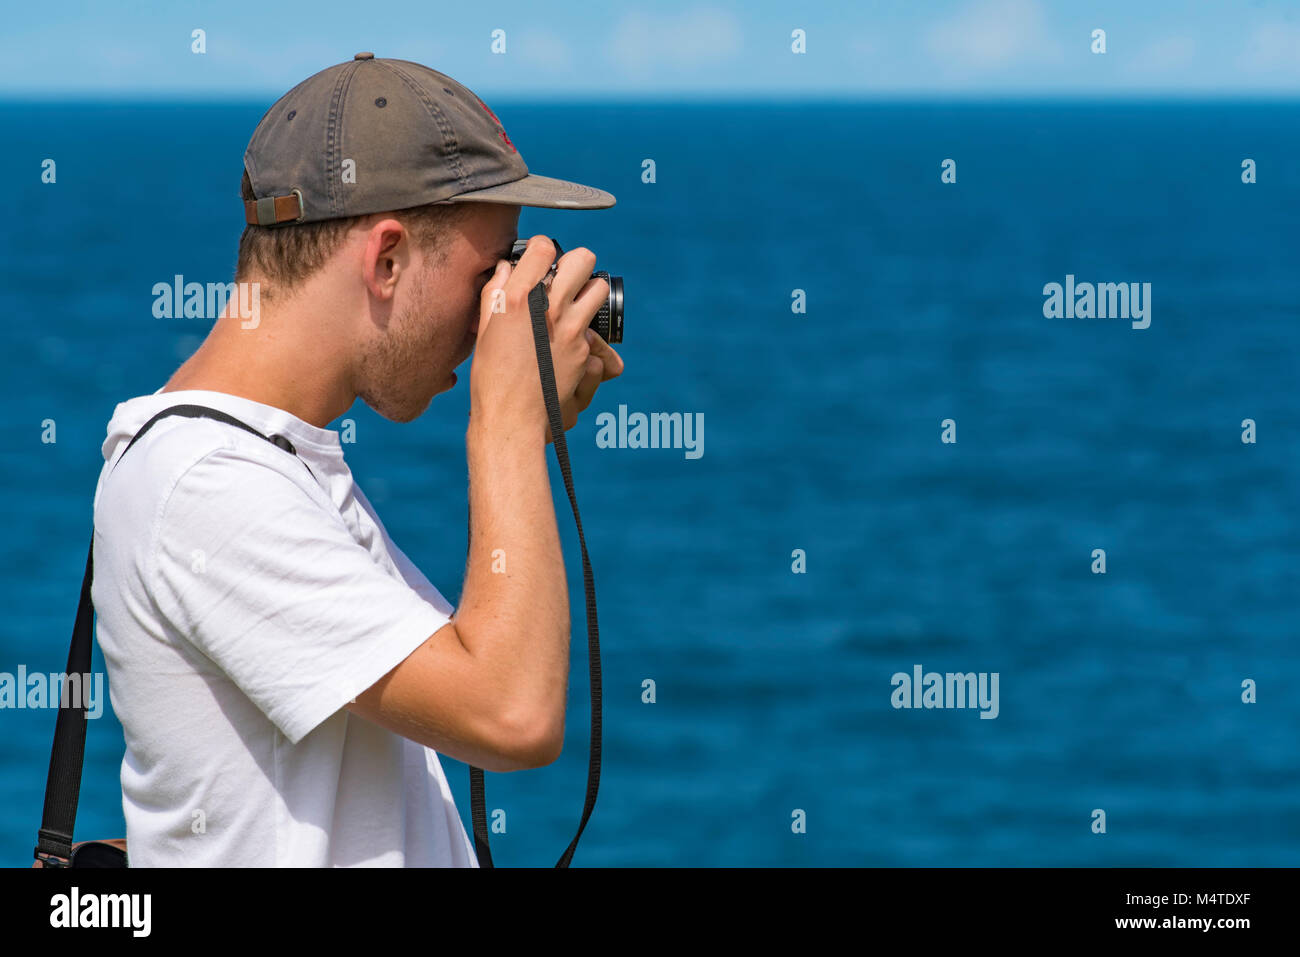 A young man taking photos near the ocean with an analogue SLR camera Stock Photo